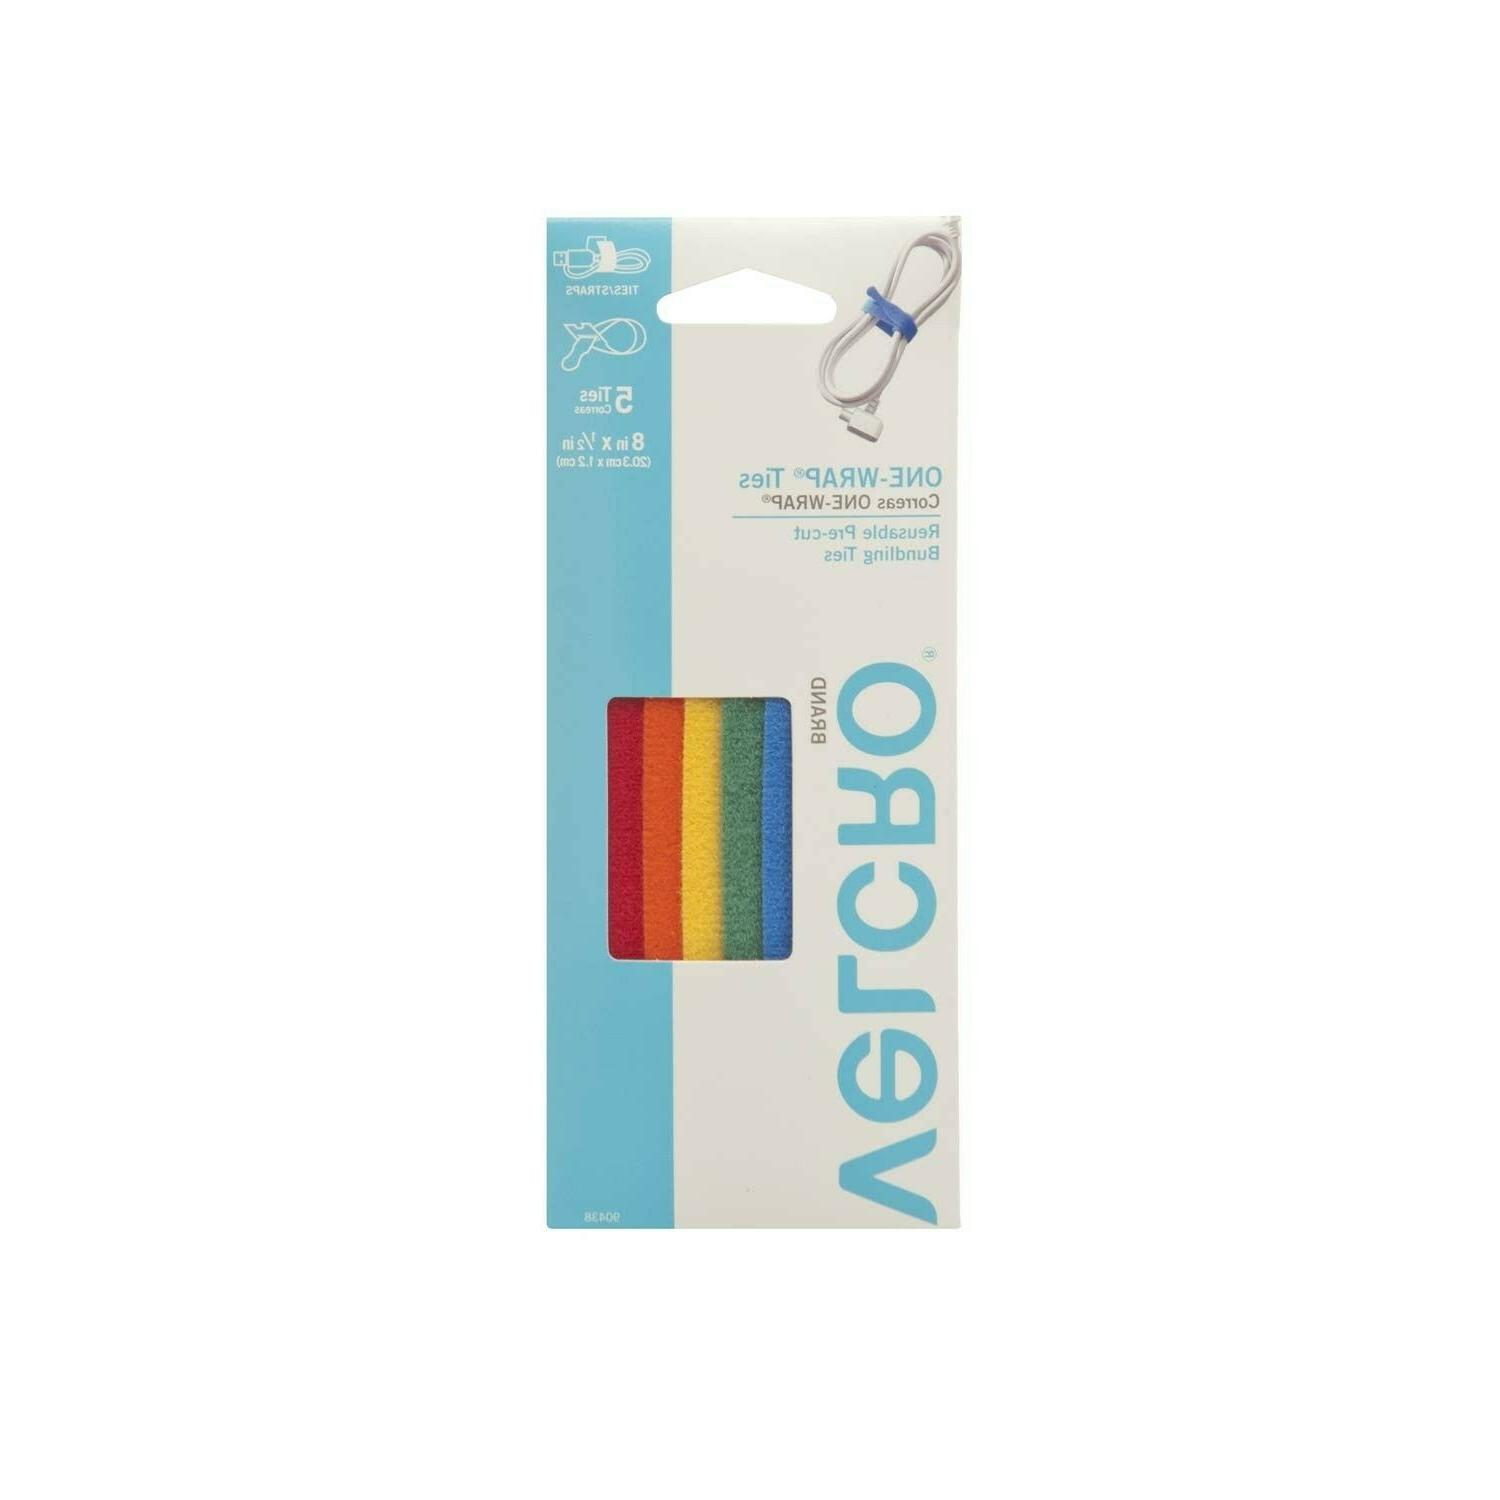 Velcro Self Gripping Strap Cord Color